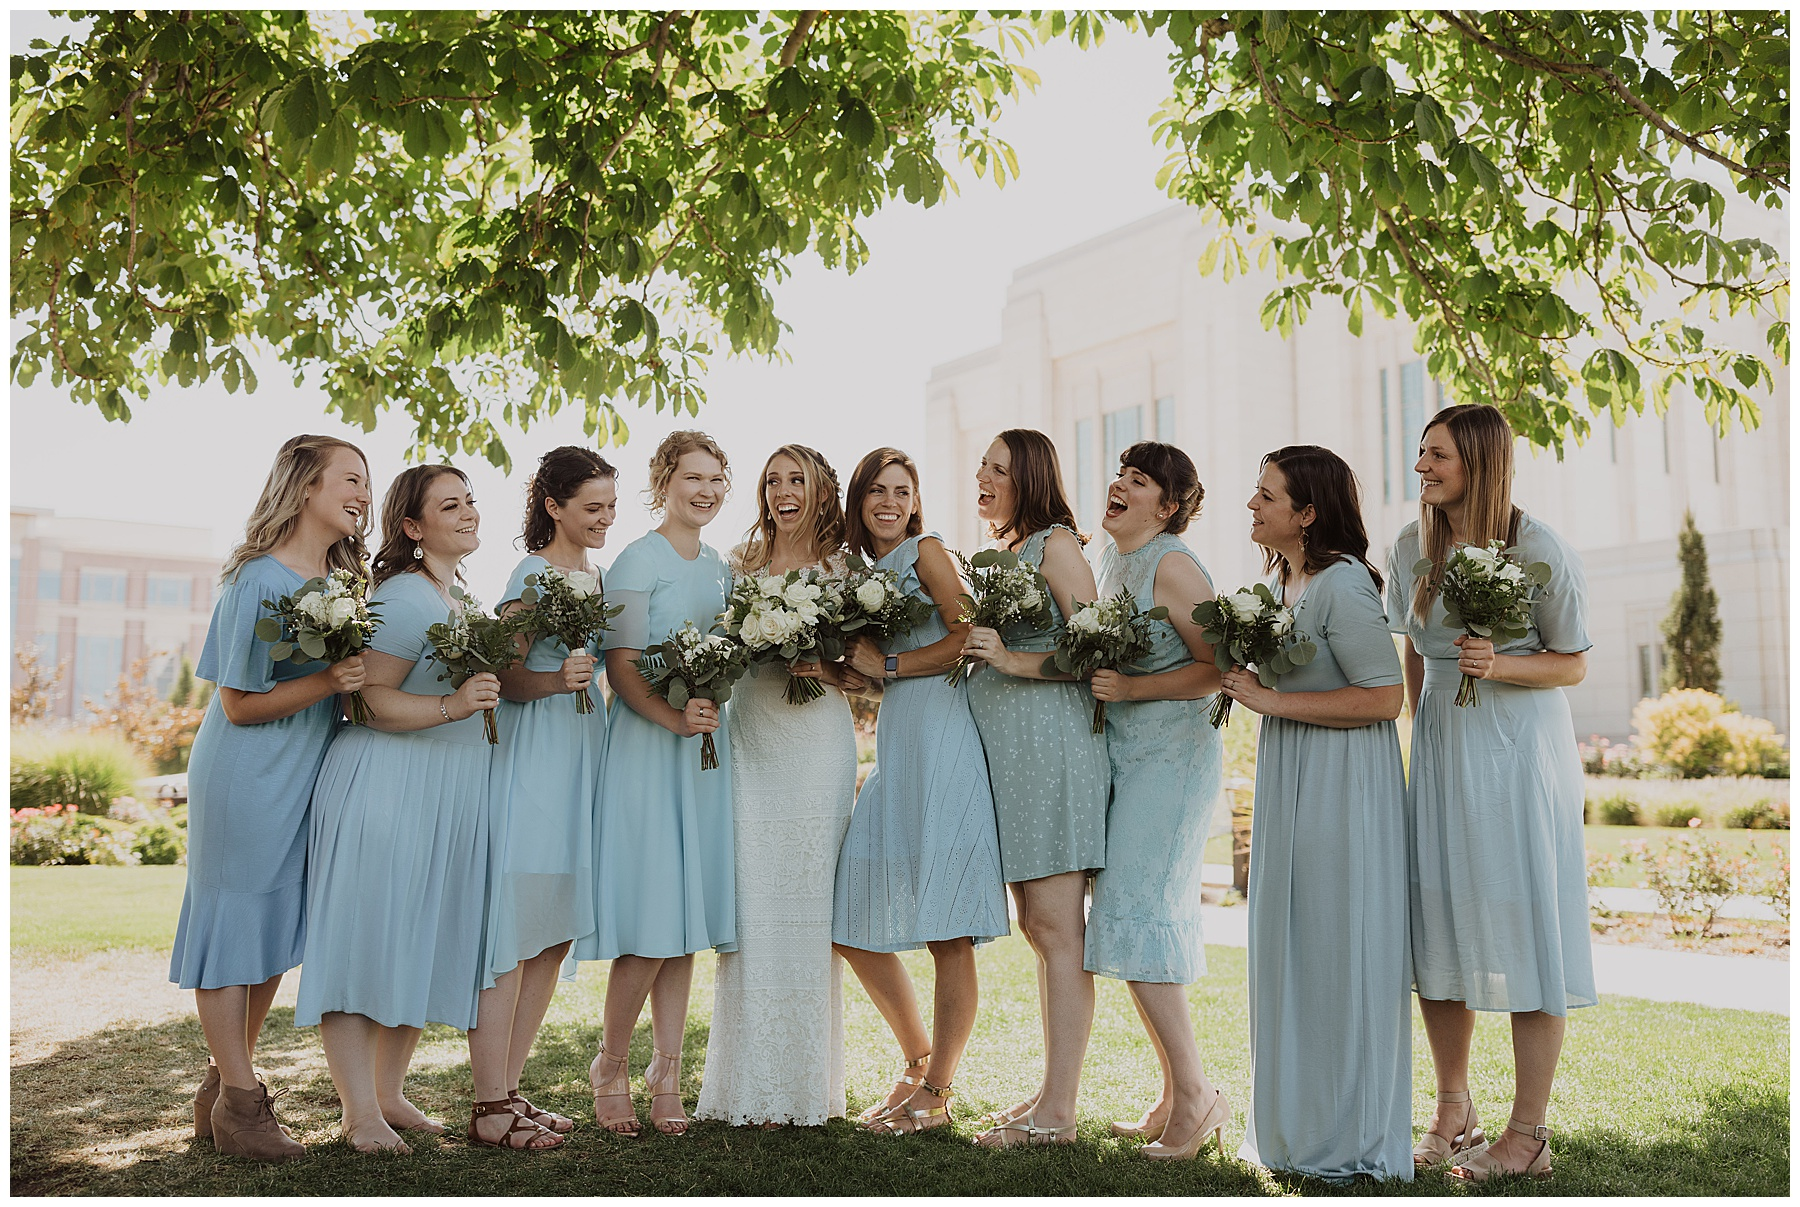 Bride with her bridesmaids wearing baby blue at a summer wedding in Utah